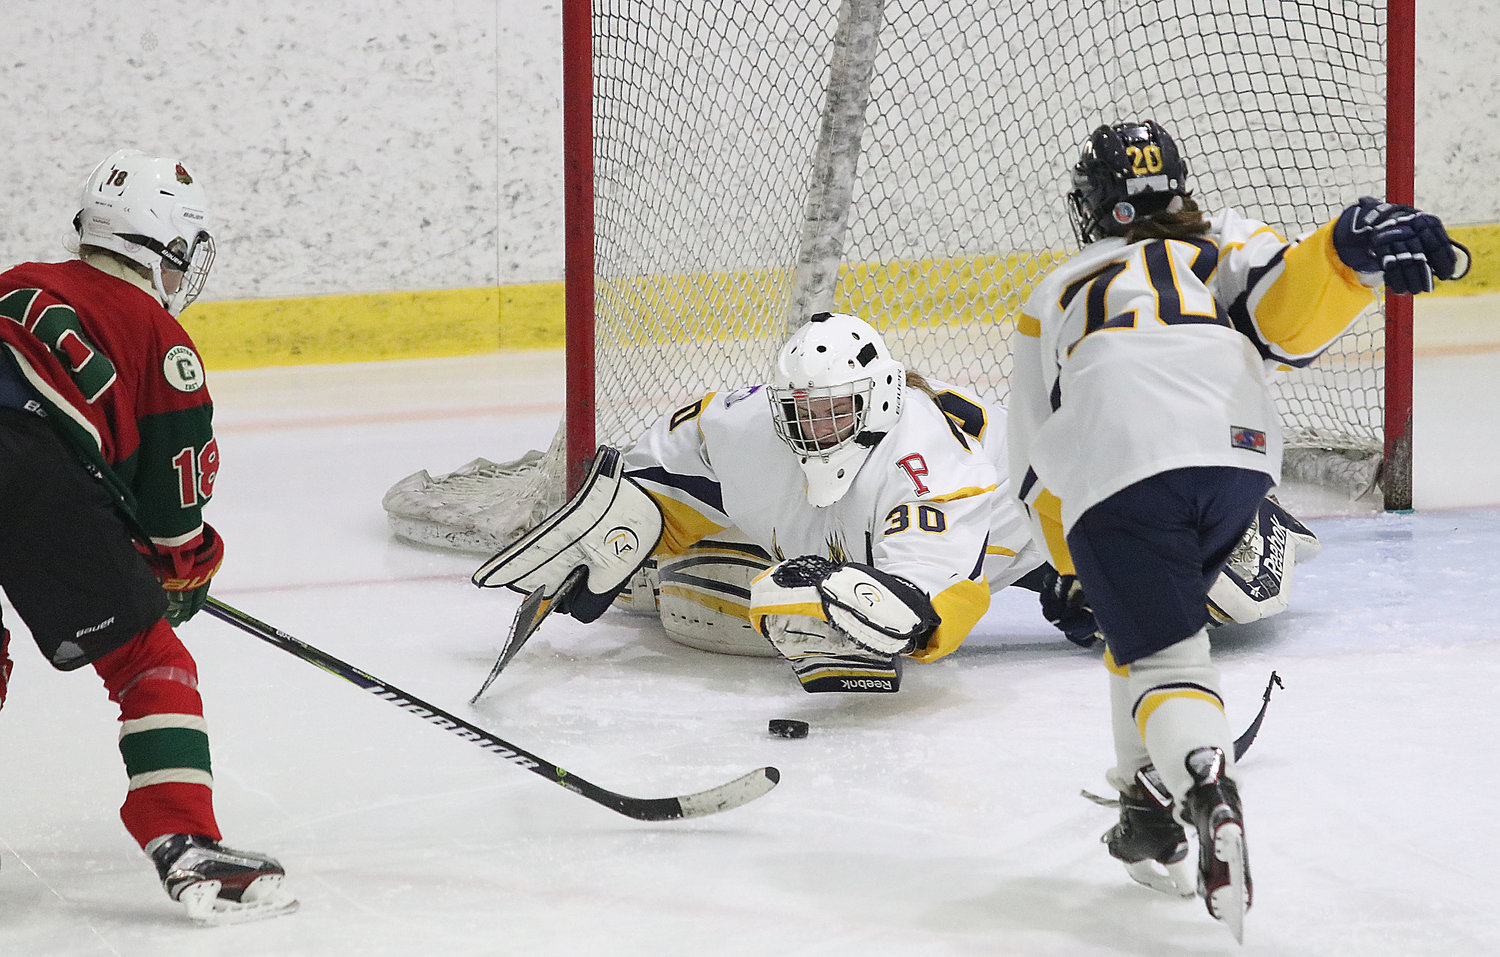 Eagles sophomore goaltender Grace Stephenson jumps on a Cranston shot on goal during their game at Portsmouth Abbey on Thursday night. Mallory Cox skates in to help at right.